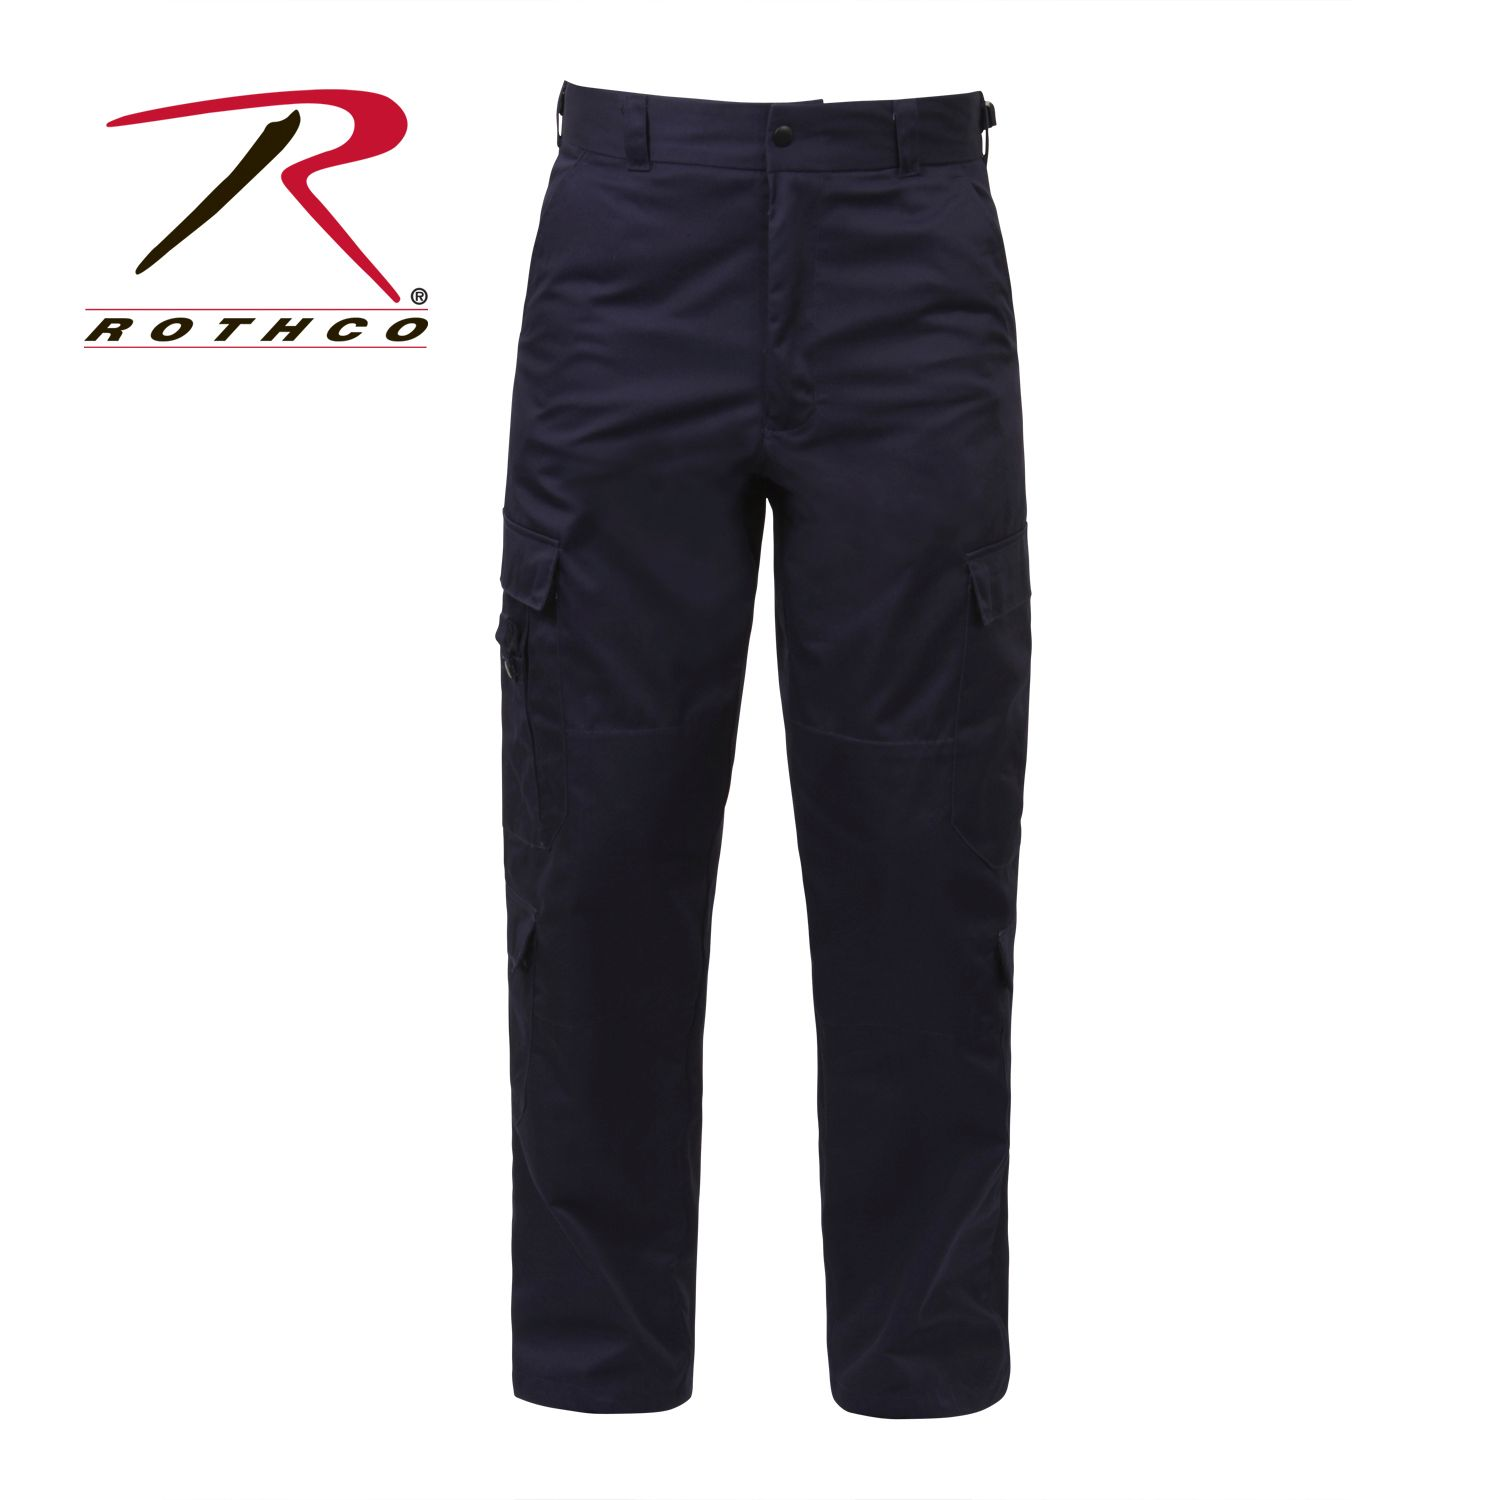 d51d3df3c7 Buy Rothco EMT Pants - Rothco Online at Best price - VA